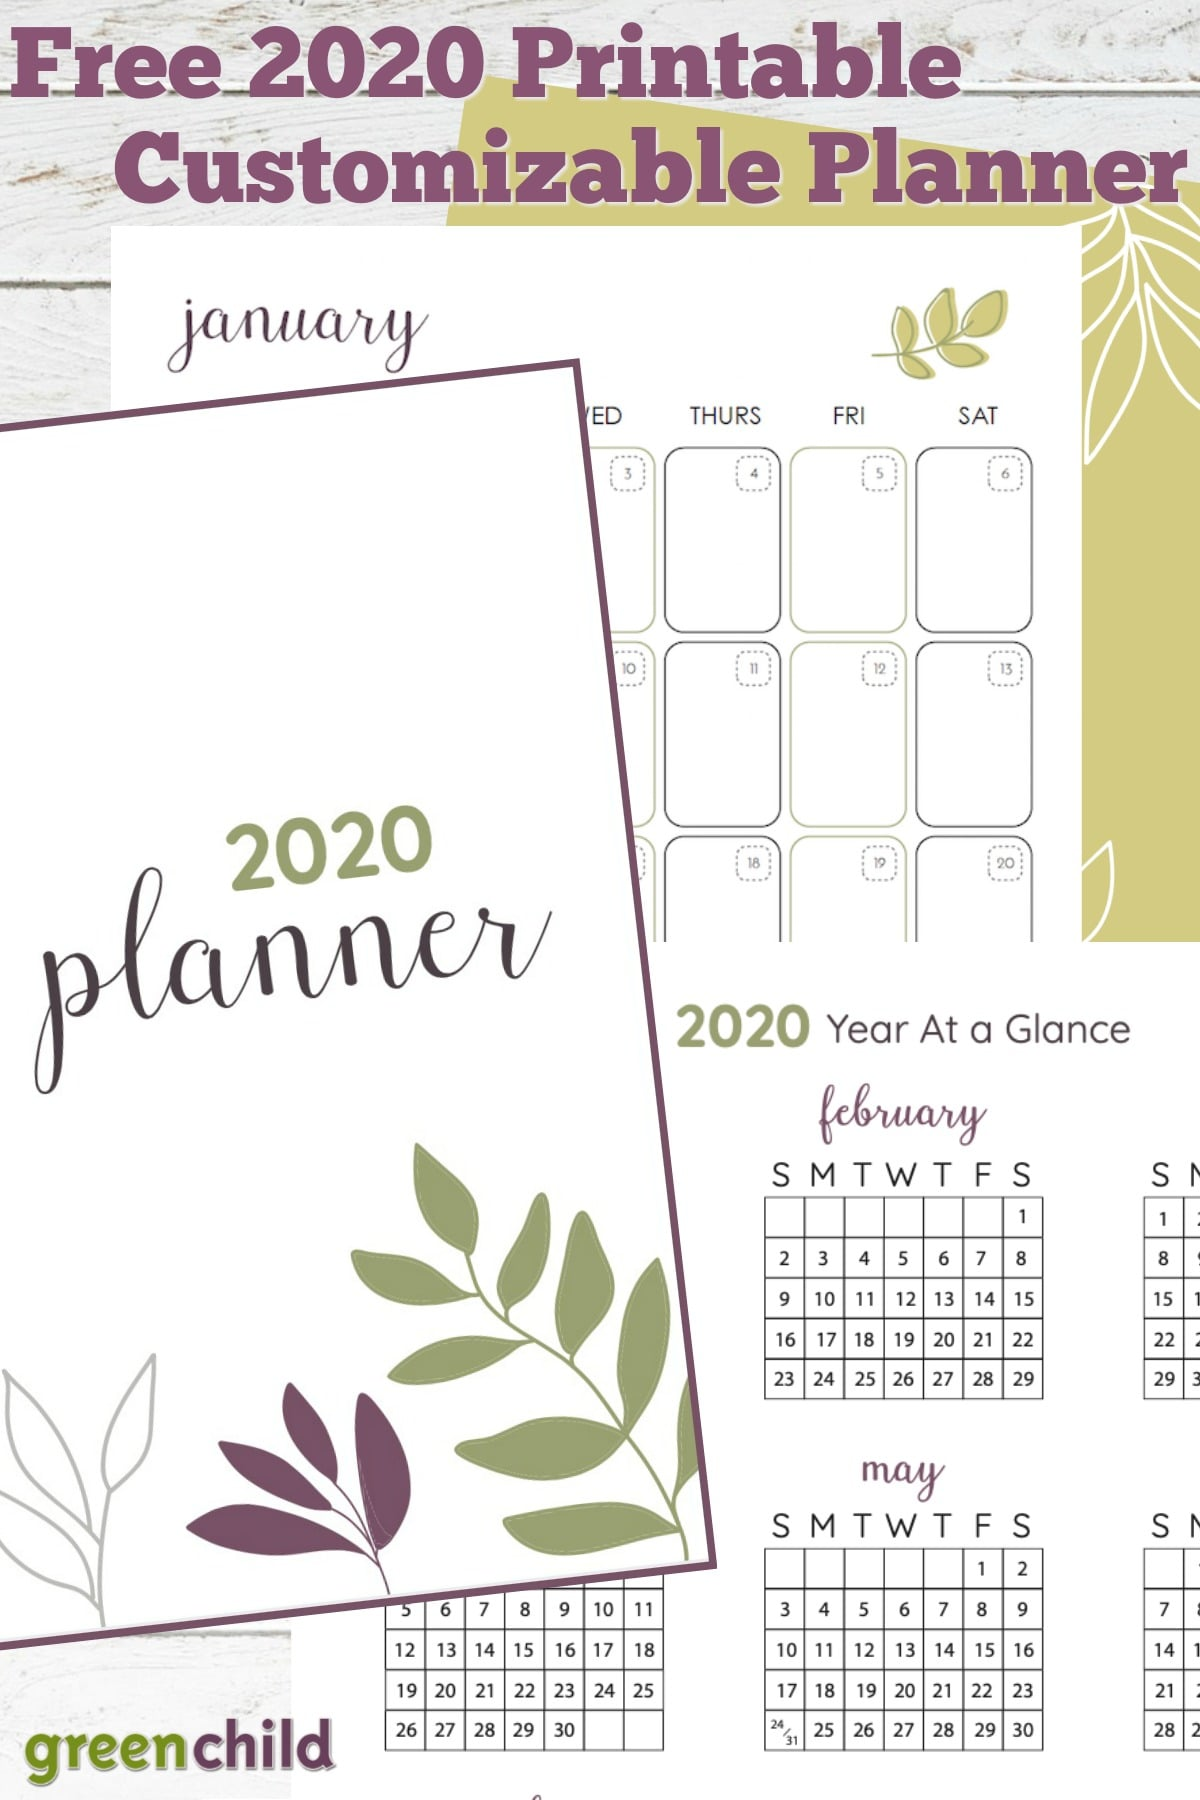 Green Child's free printable planner